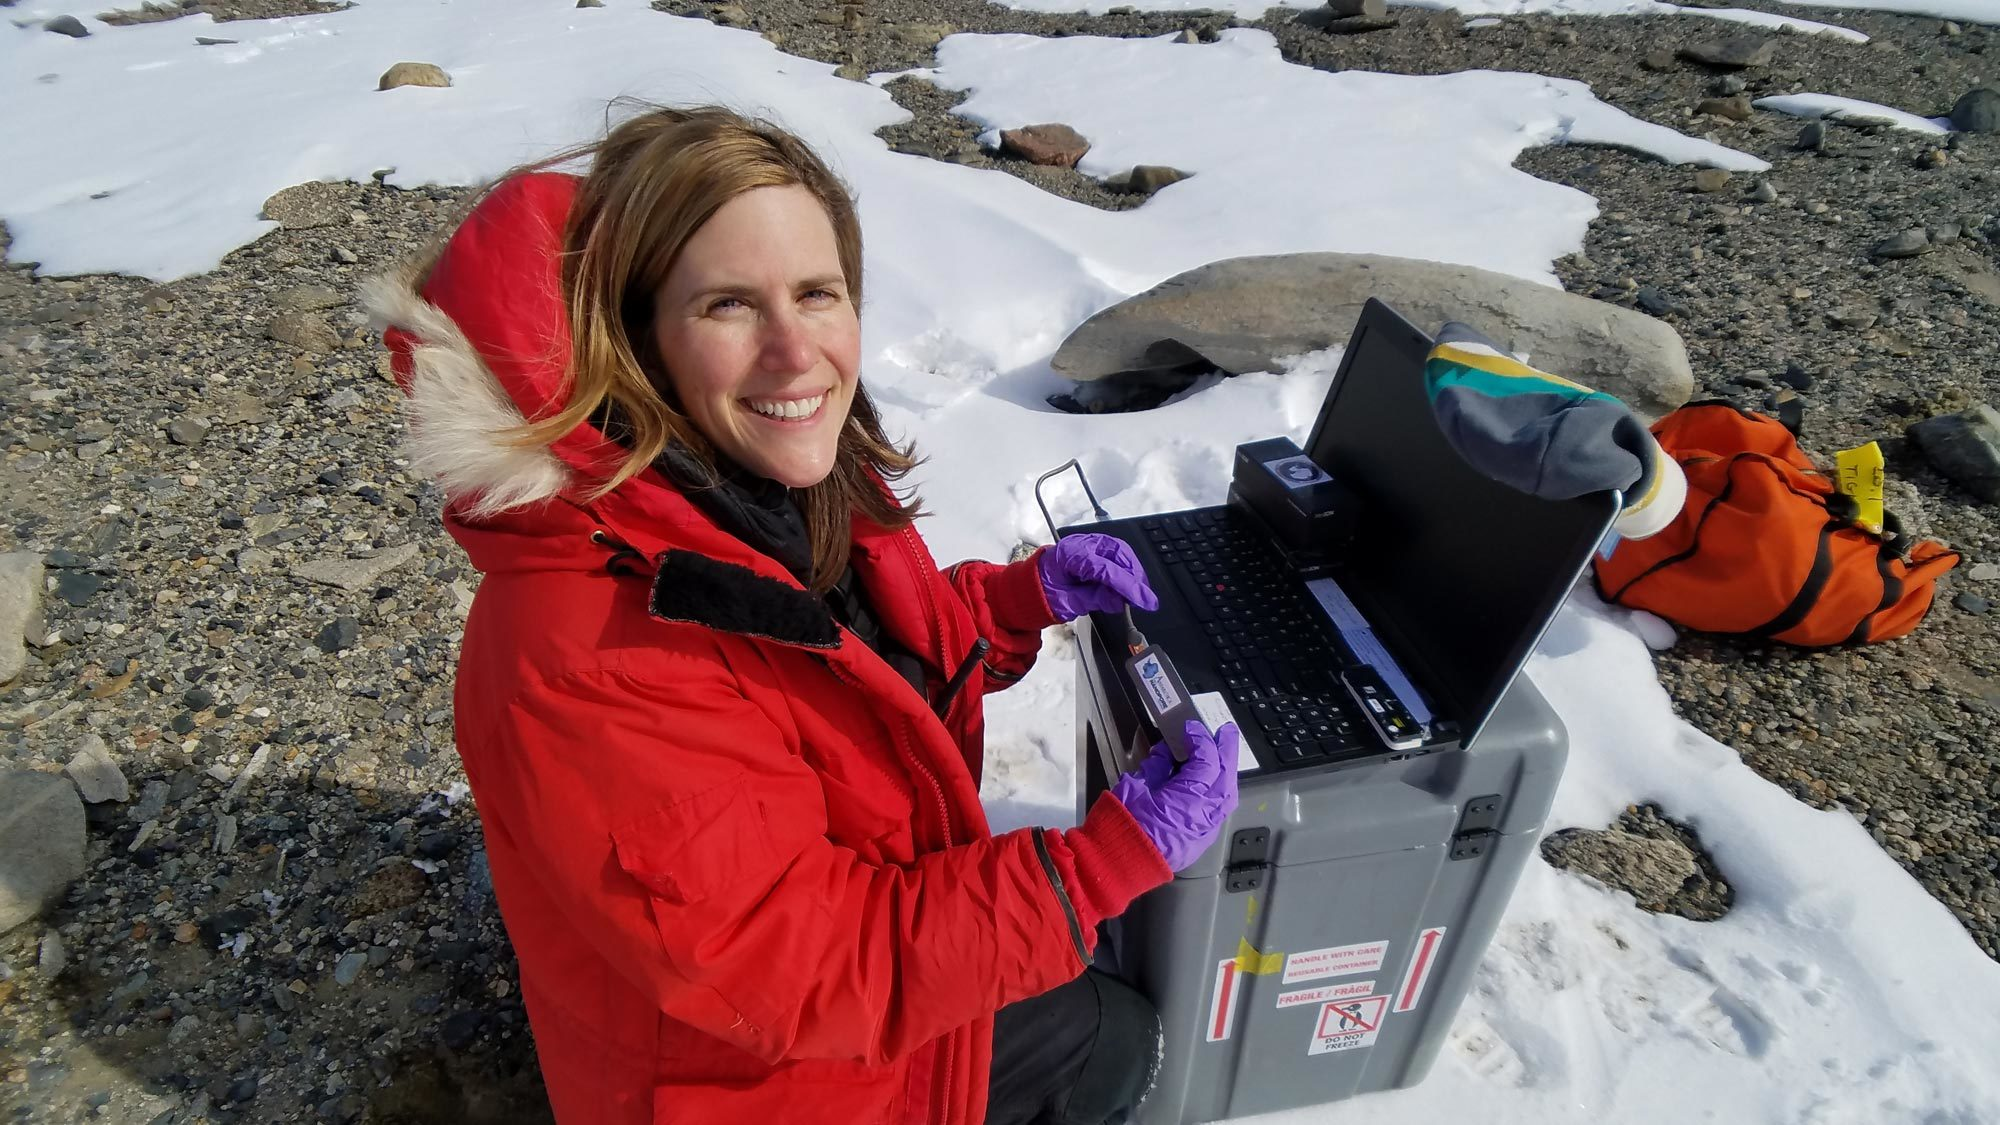 Sarah Johnson collects samples while sitting on a snow-covered ground in Antarctica.